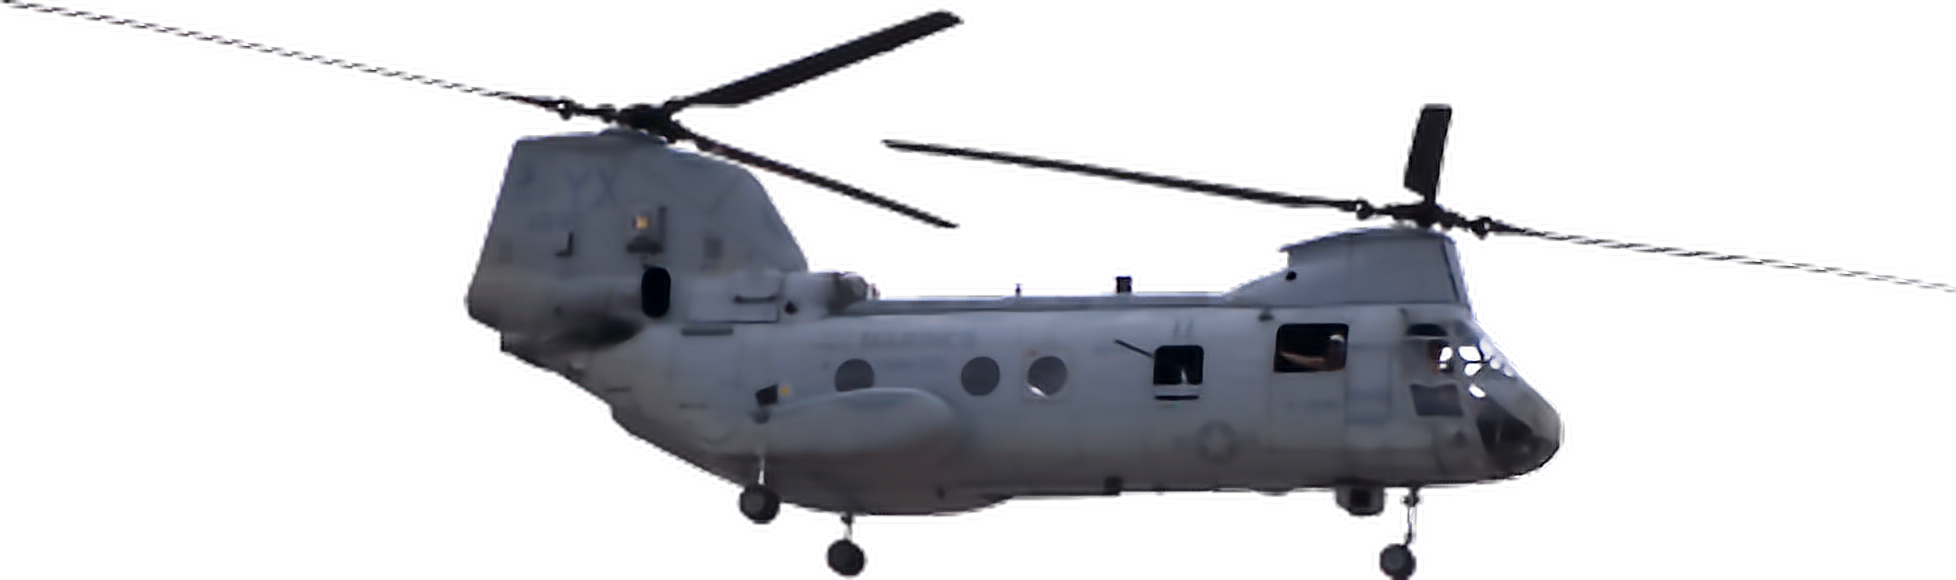 Military plane . Helicopter clipart army helicopter